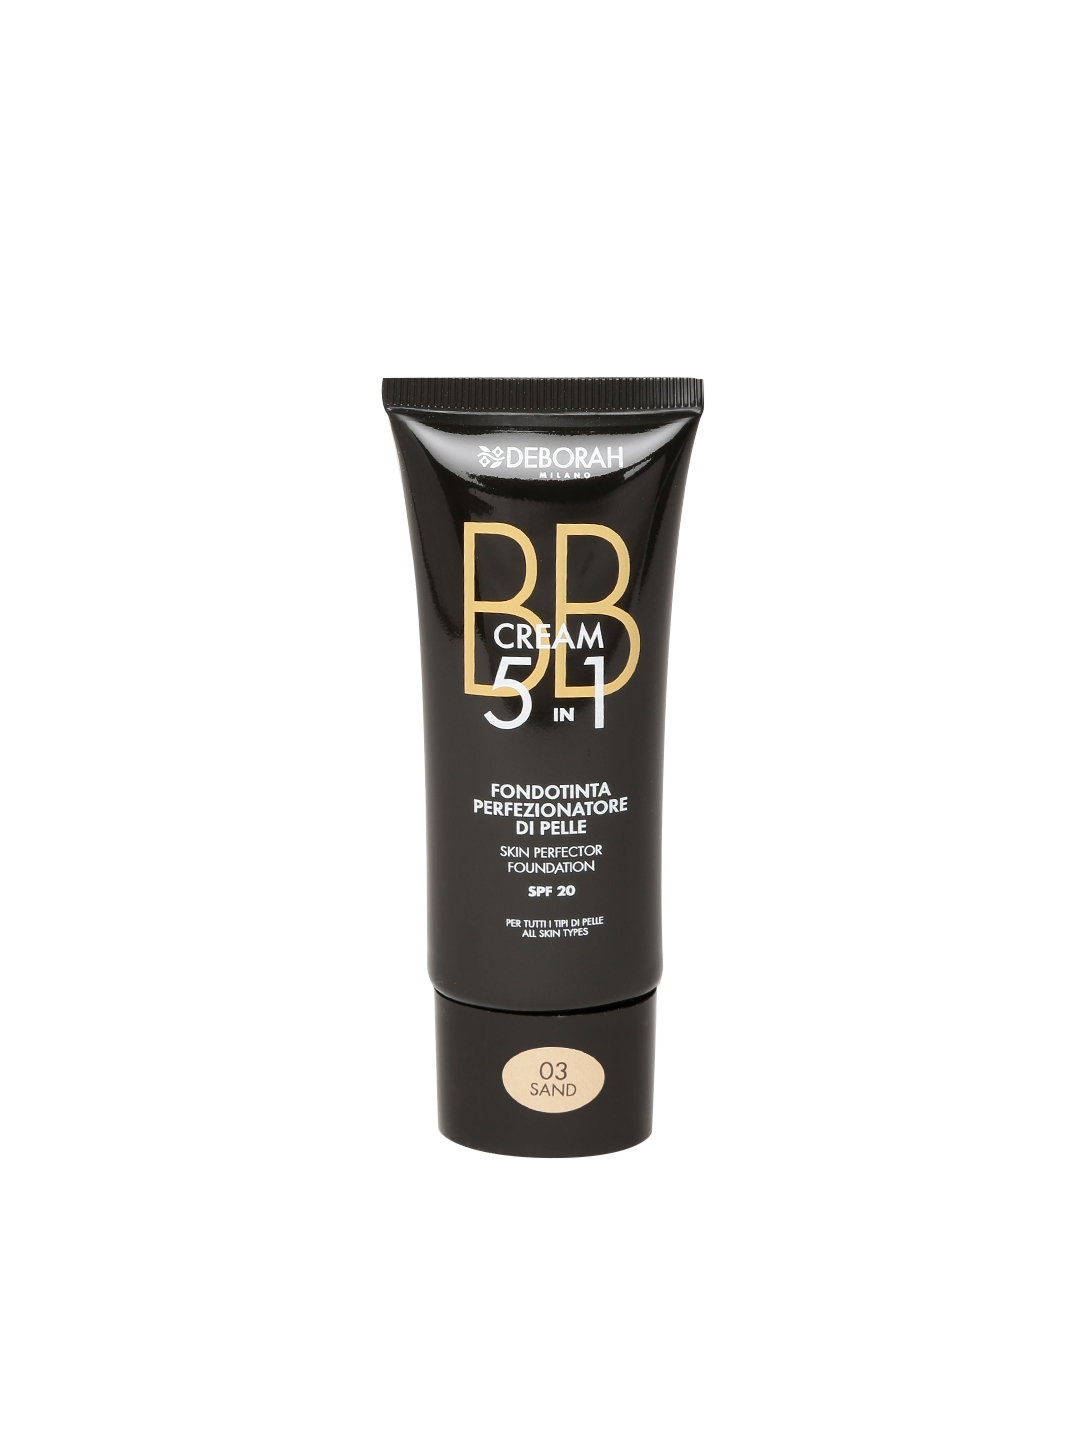 Deborah Milano Sand SPF 20 5 in 1 BB Cream 03 30 ml